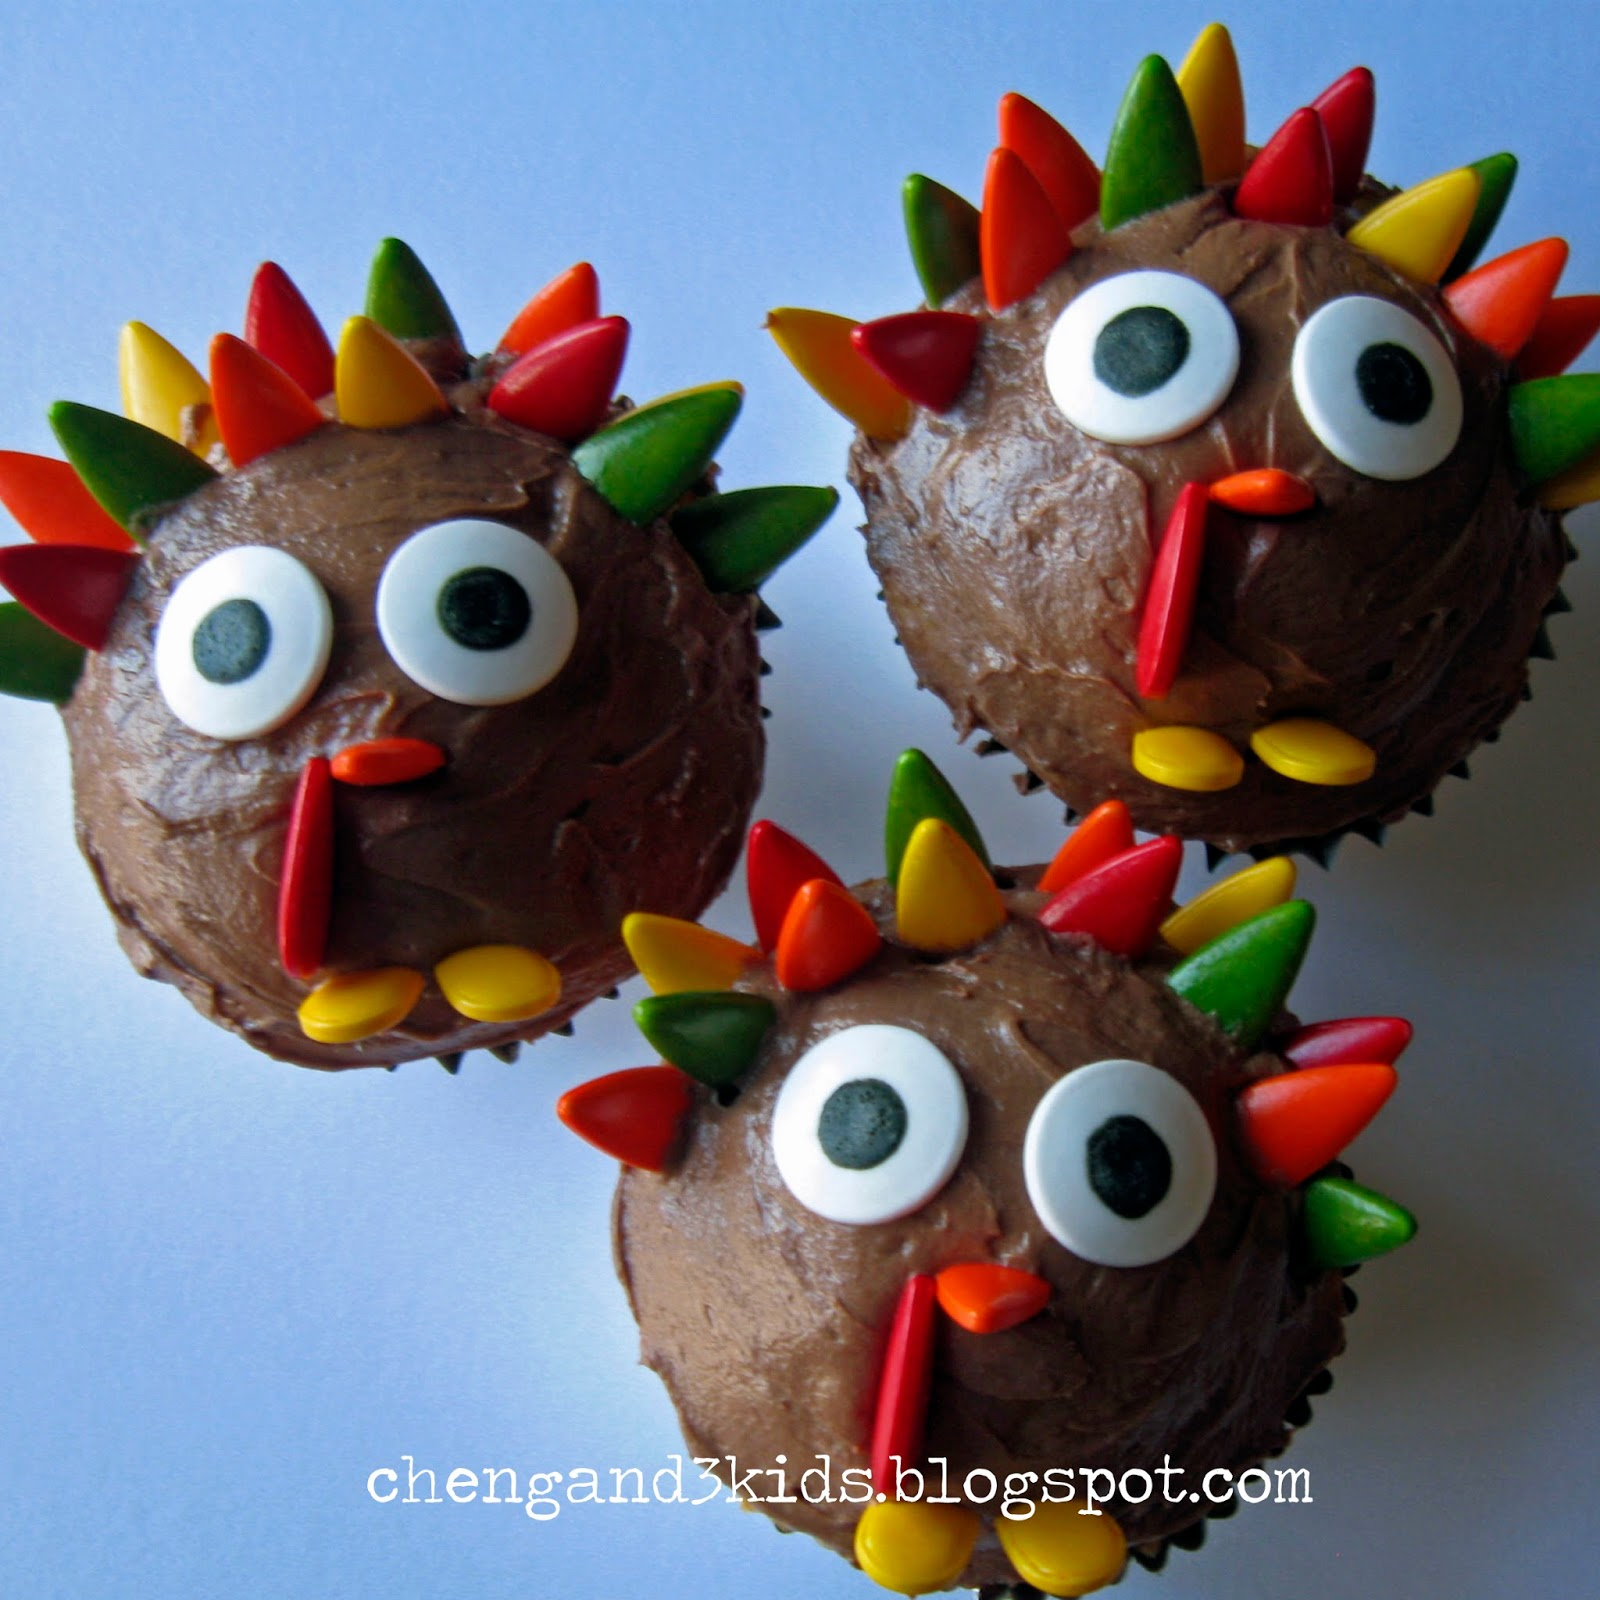 Turkey Cupcakes by Cheng and 3 Kids